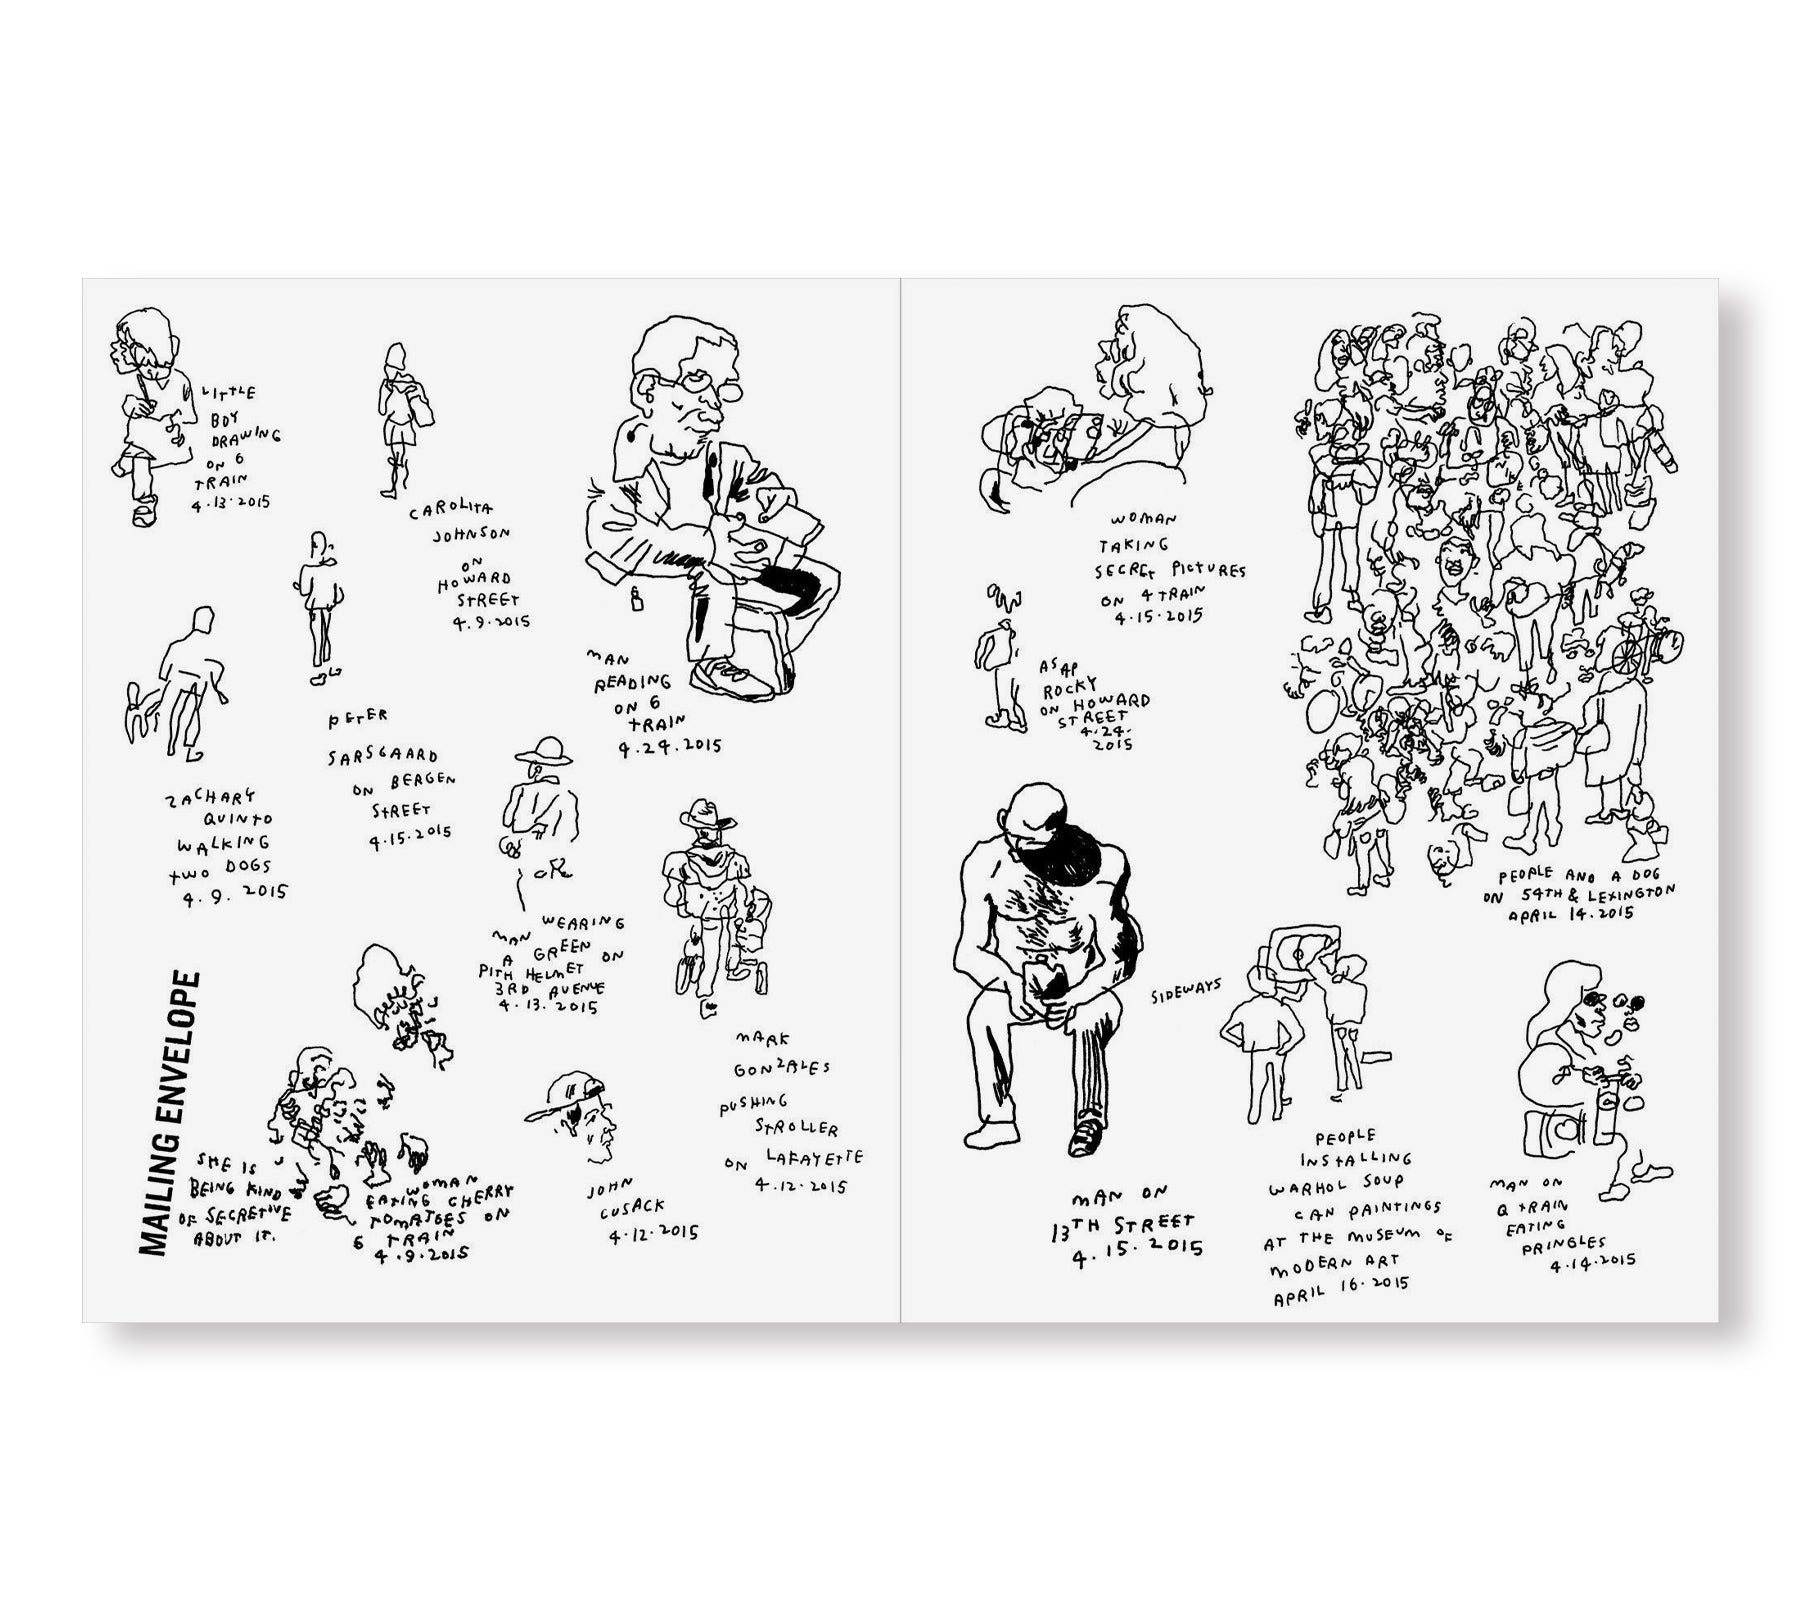 EVERY PERSON IN NEW YORK VOL 2 by Jason Polan